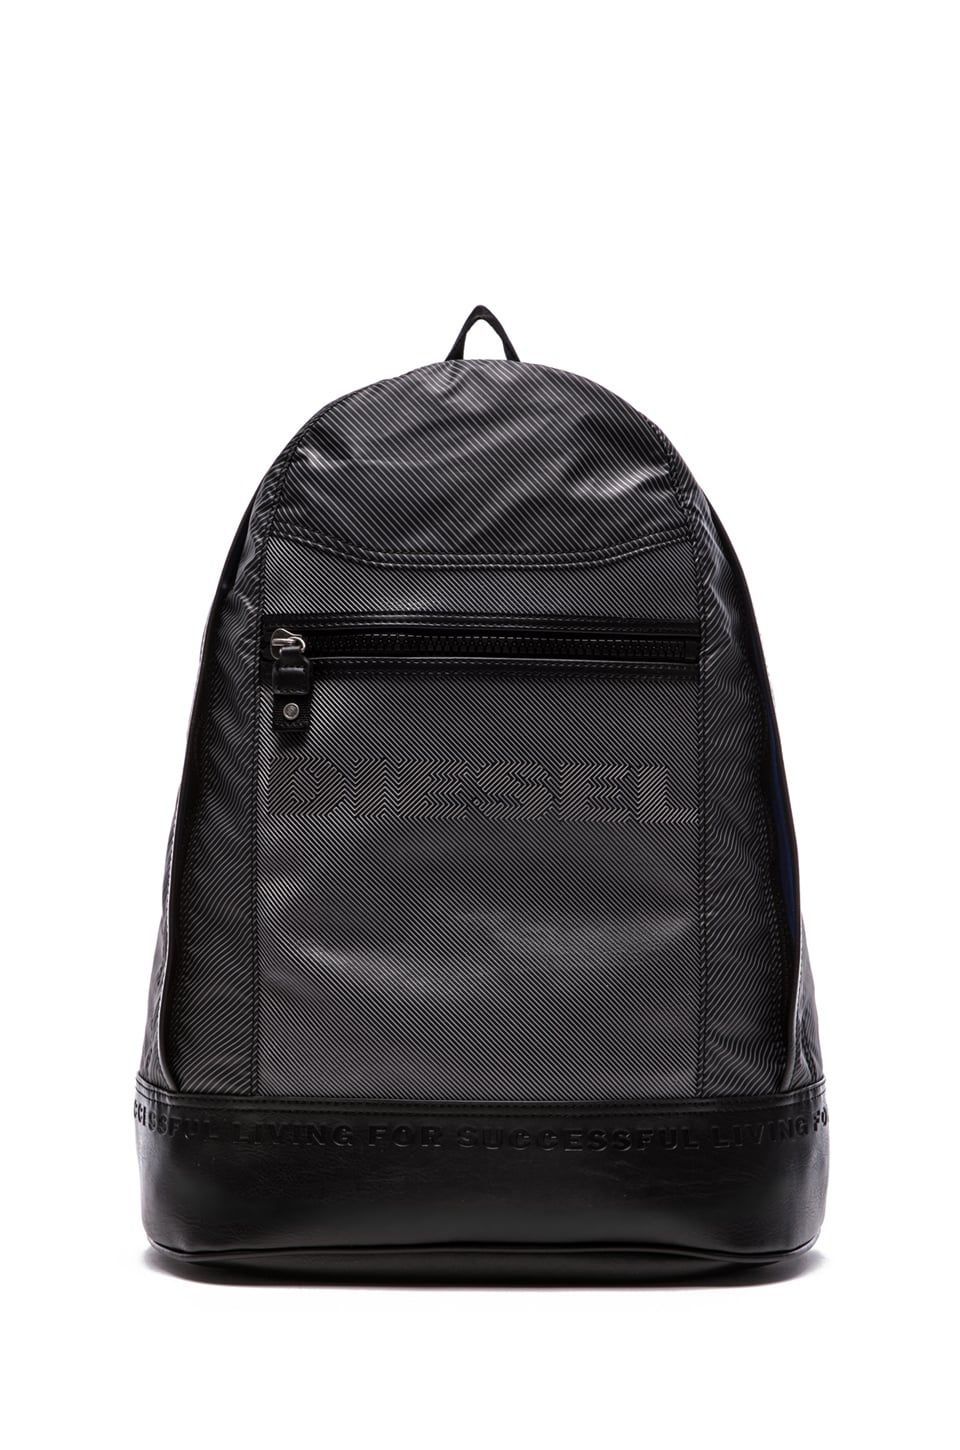 Diesel Illusion on the Road New Ride Backpack in Dark Grey Optical